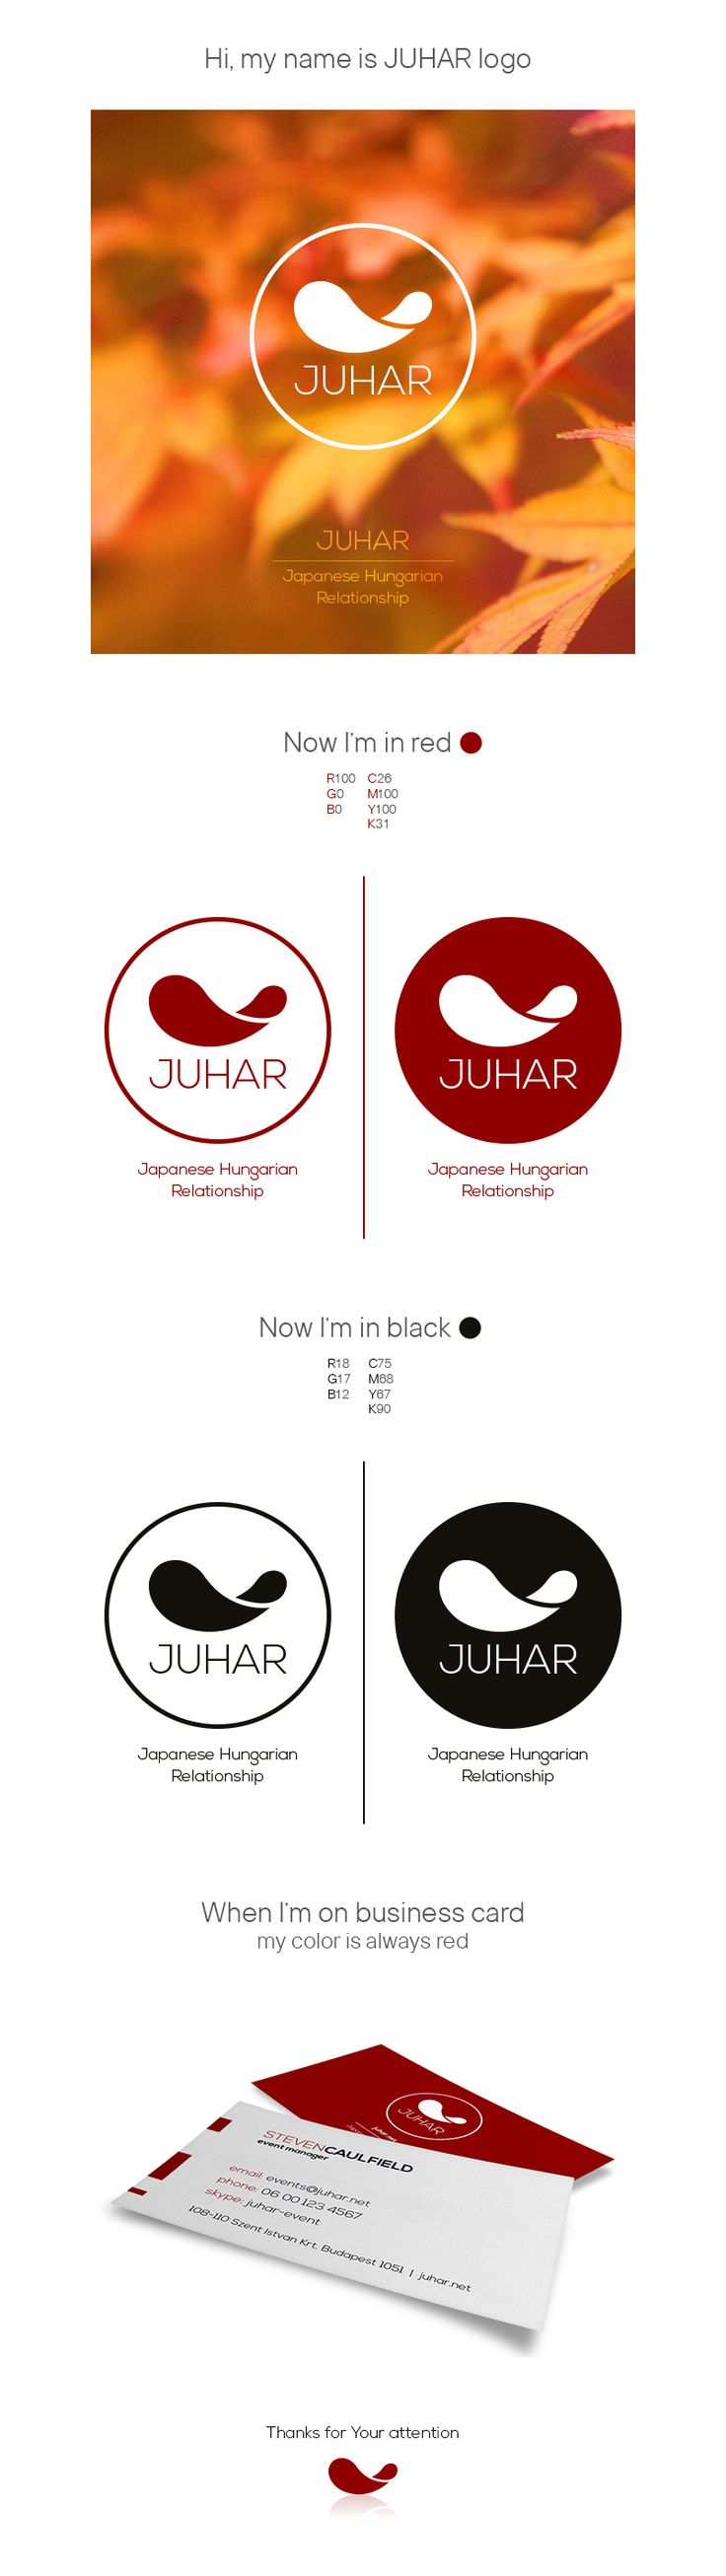 "JUHAR Logo - This logo design was made for a Japanese Hungarian site dealing with contemporary art tenders. 'Juhar' means maple. I decided not to use the usual form of the leaf but I focused on the seed instead. The distinctive fruit are called ""maple keys""."